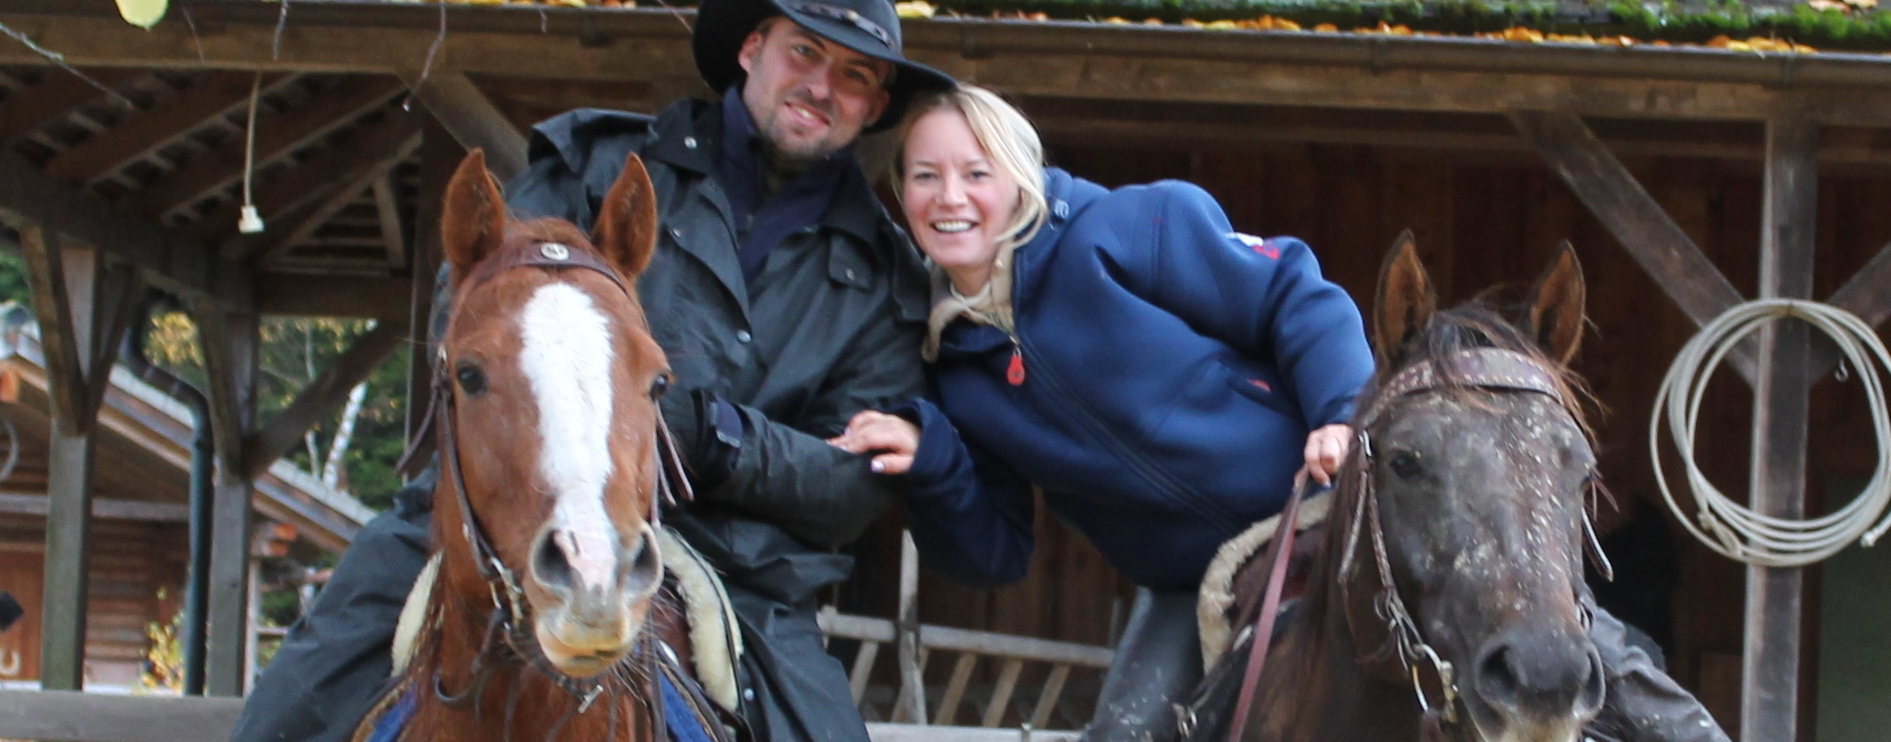 Unsere Familie | Black Mountain Ranch